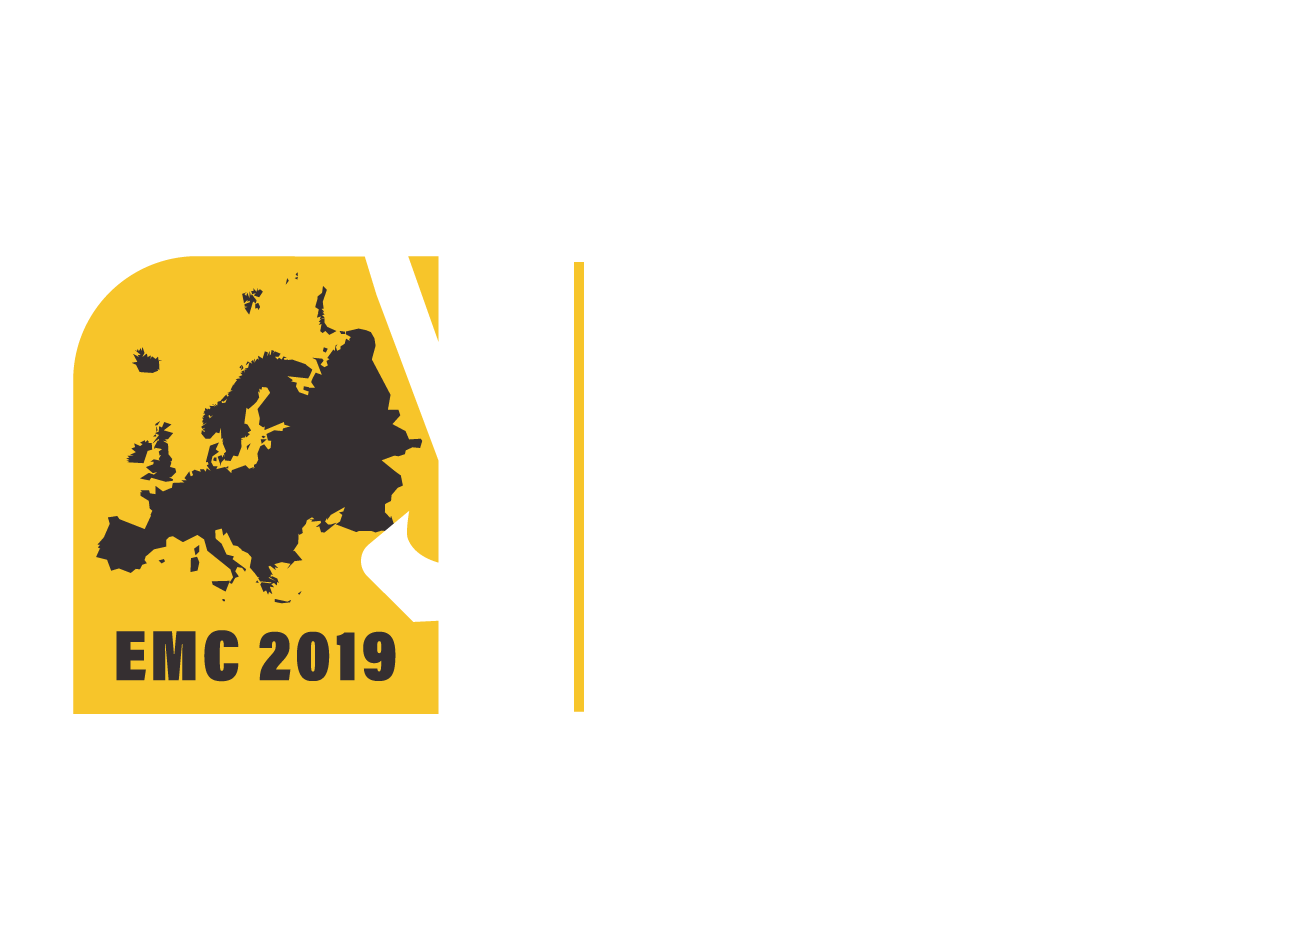 European Mining Convention Dublin